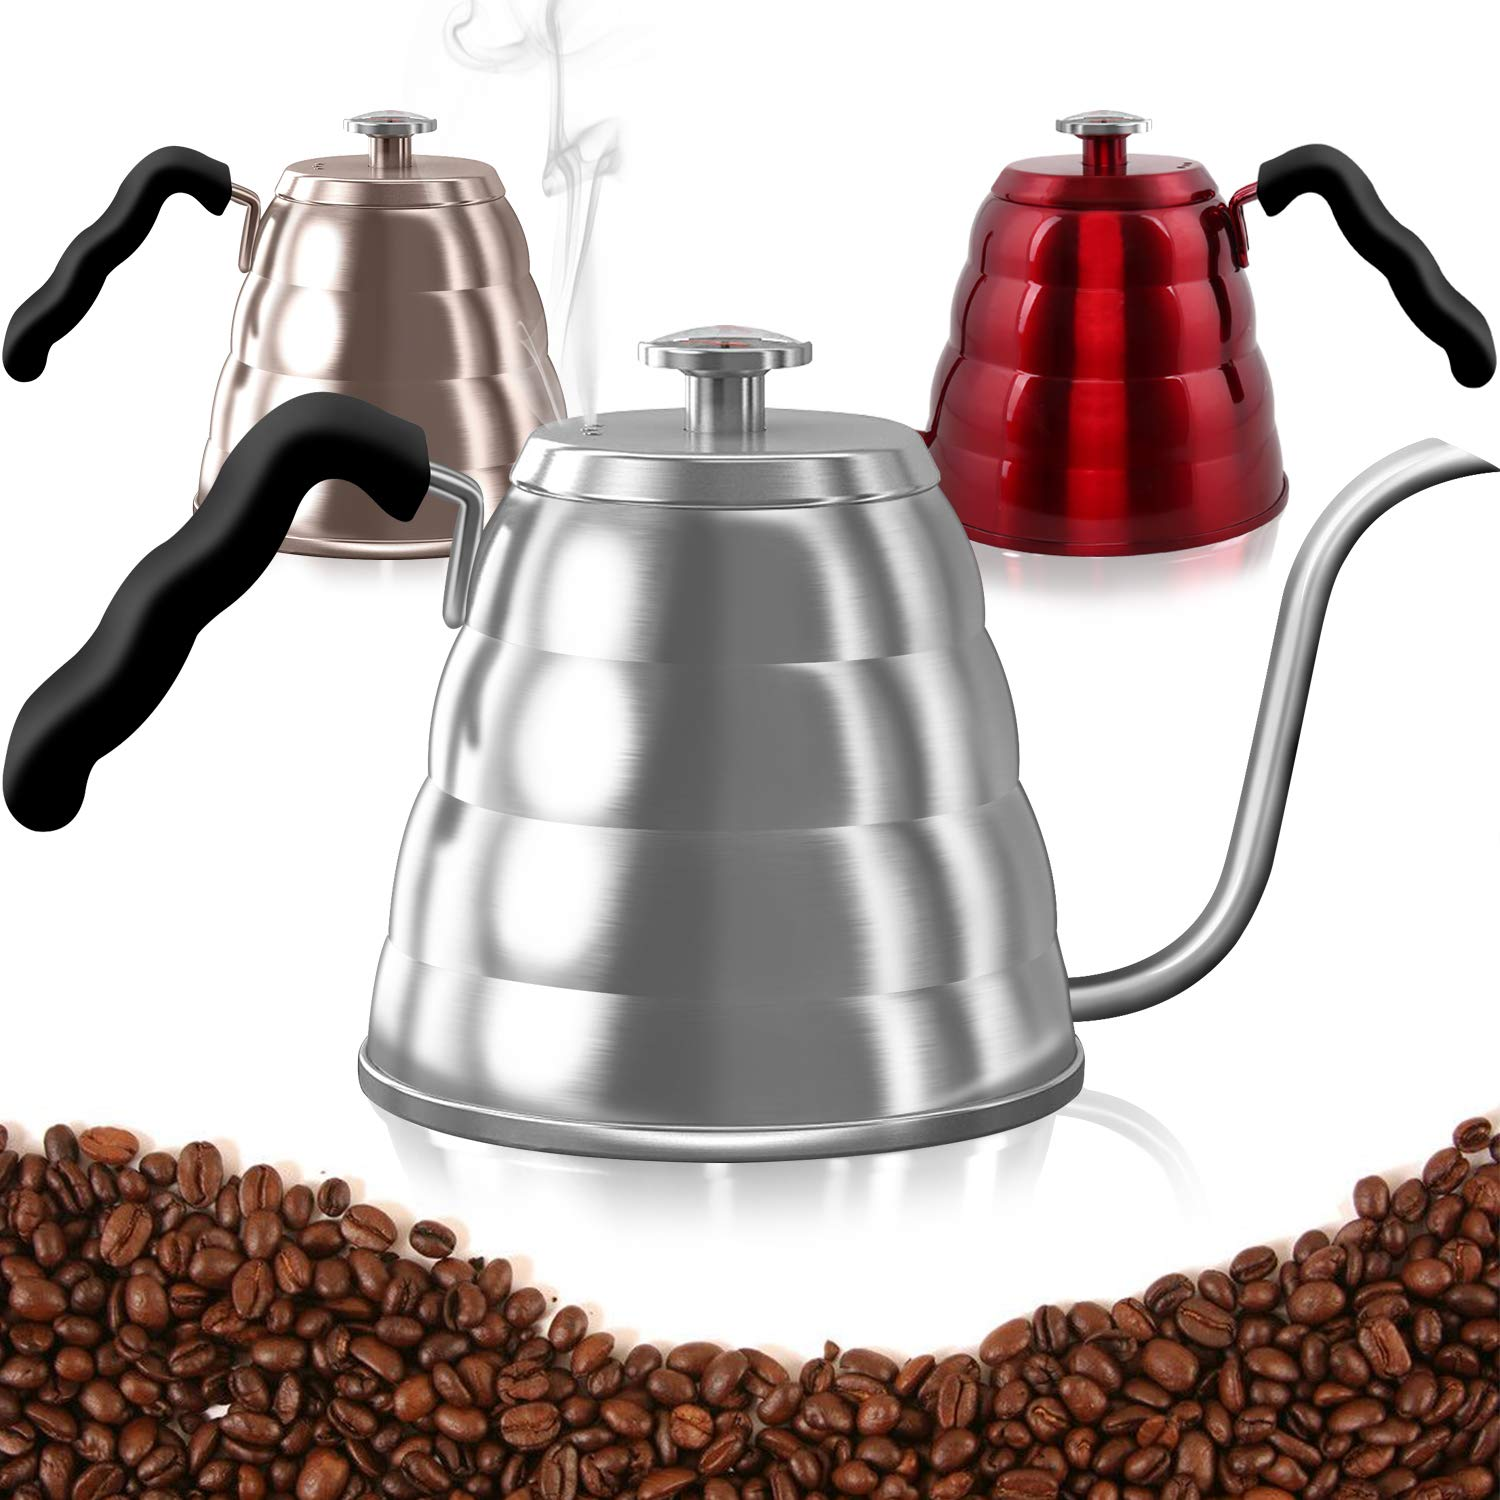 Pour Over Coffee Kettle with Thermometer-Flow Gooseneck Spout-Brew Barista-Standard Hand Drip Coffee and Tea-Suitable for all Stovetops Including Induction-Insulated BPA Free Handle(40 floz, silver)...